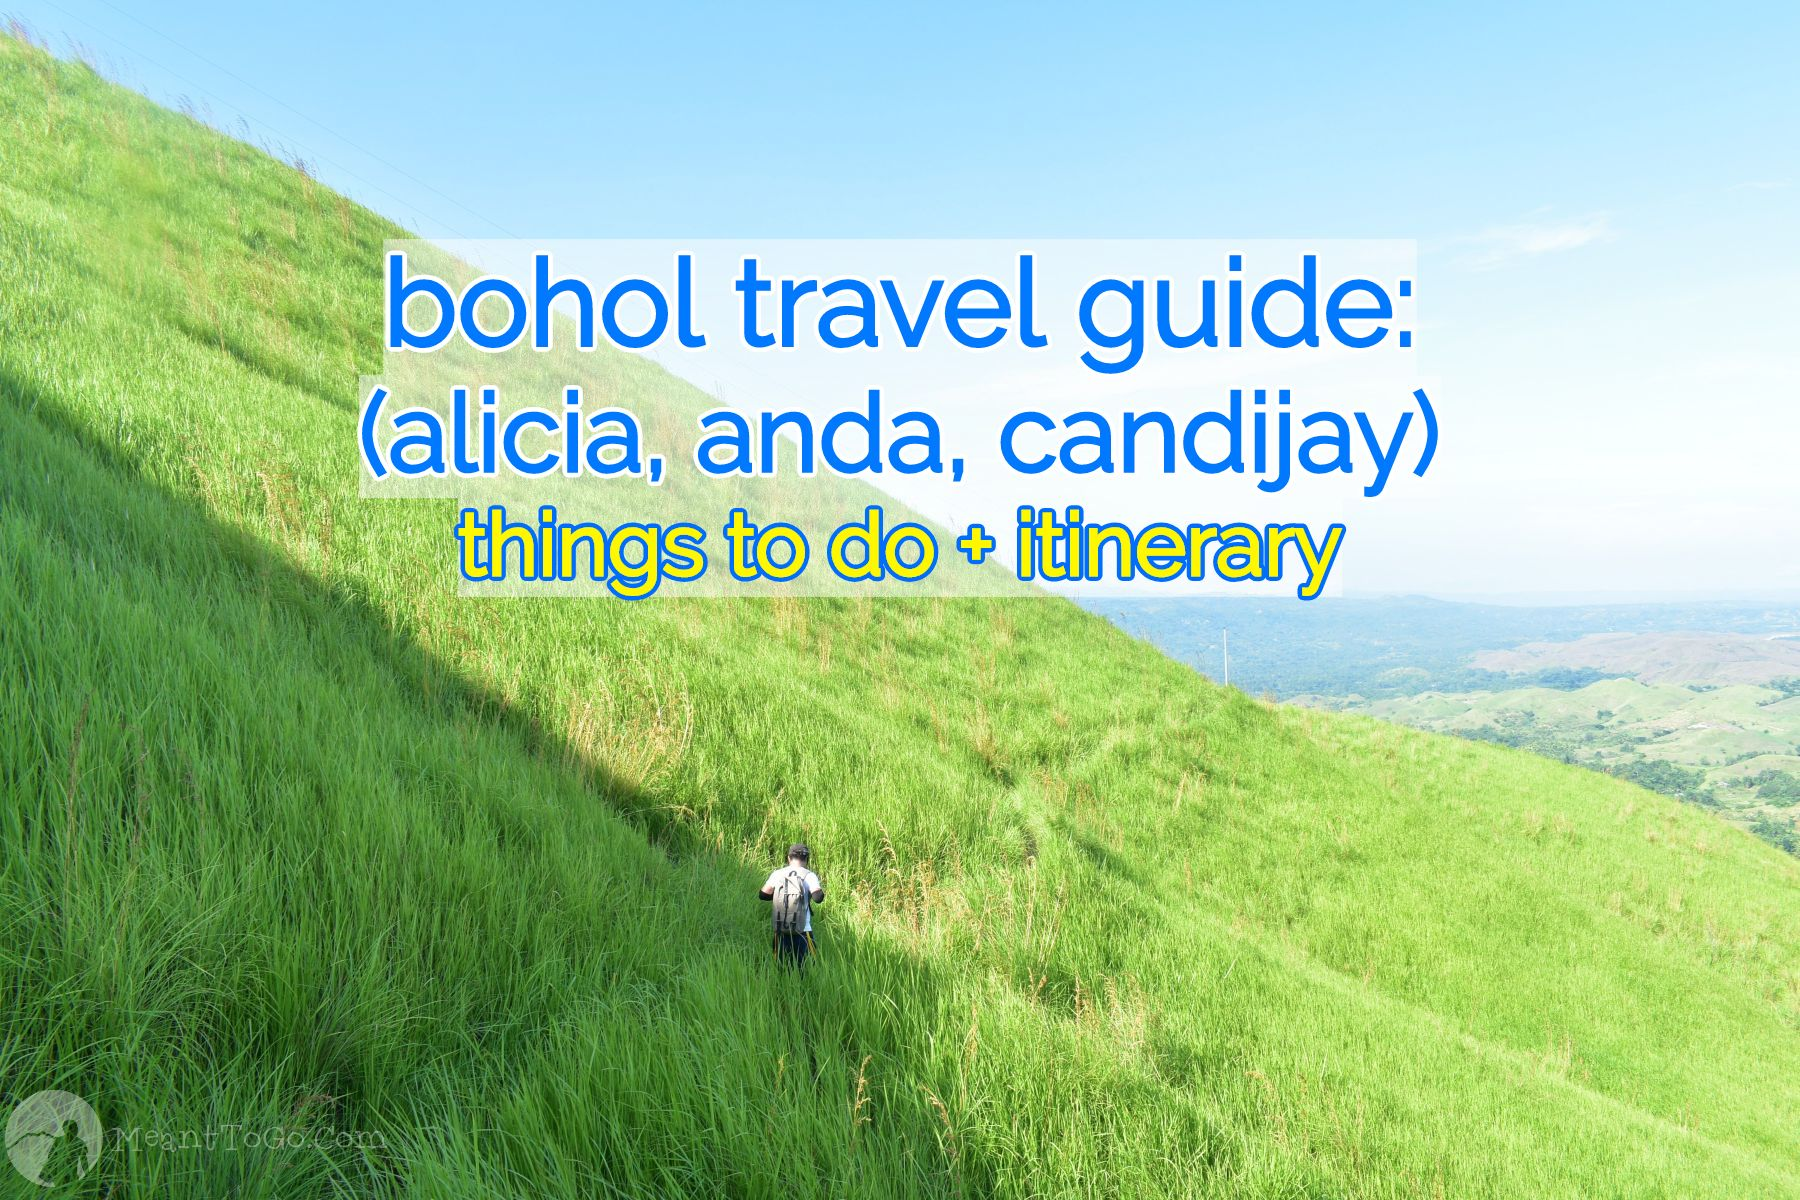 Bohol travel guide - alicia, anda, candijay